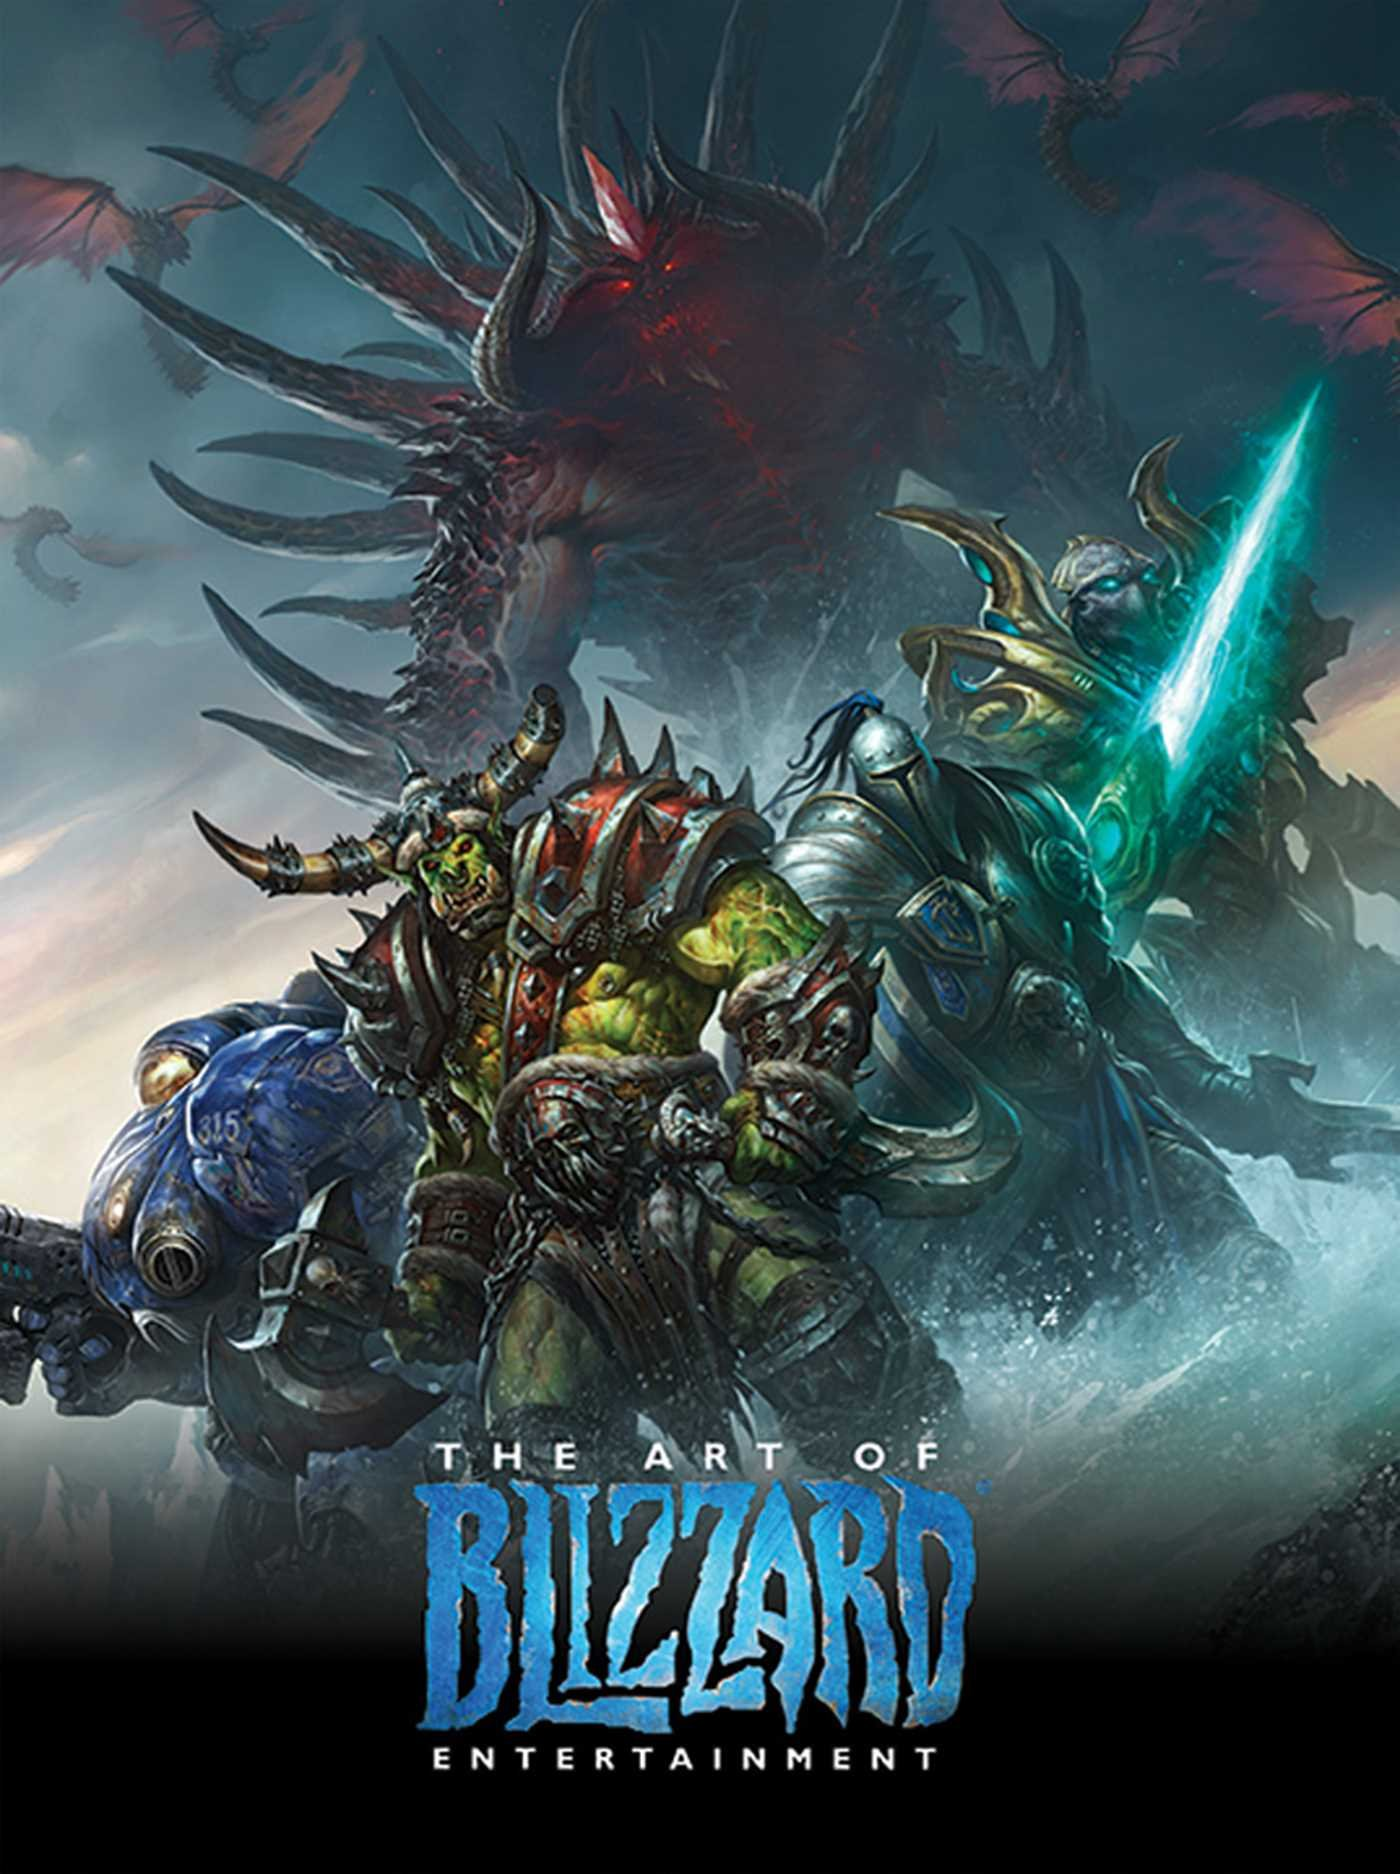 Download The Art Of Blizzard Entertainment 